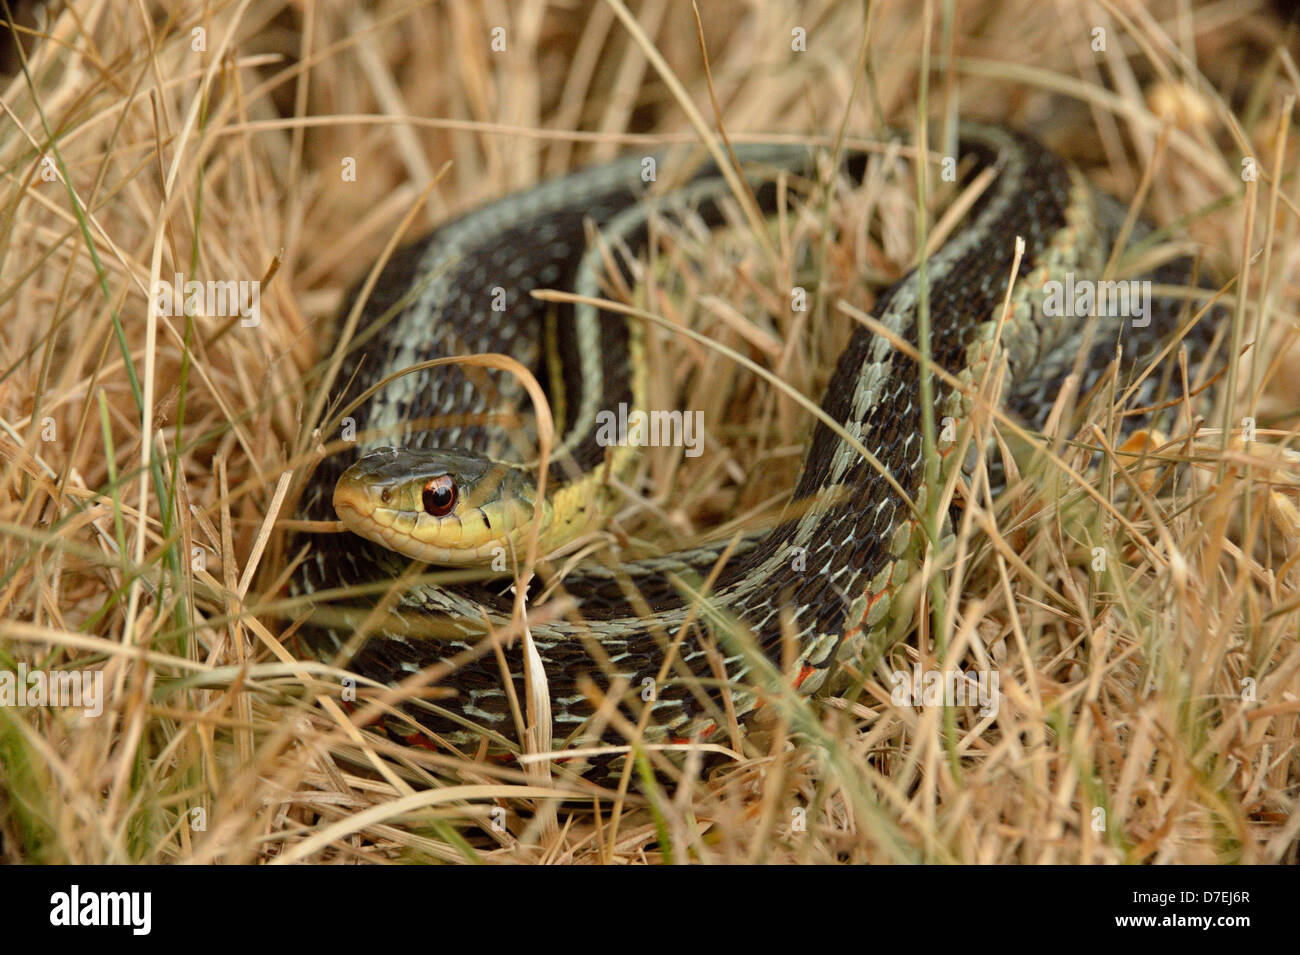 Common garter snake Thamnophis sirtalis Coiled sunning itself in dead grass Greater Sudbury  Ontario Canada - Stock Image